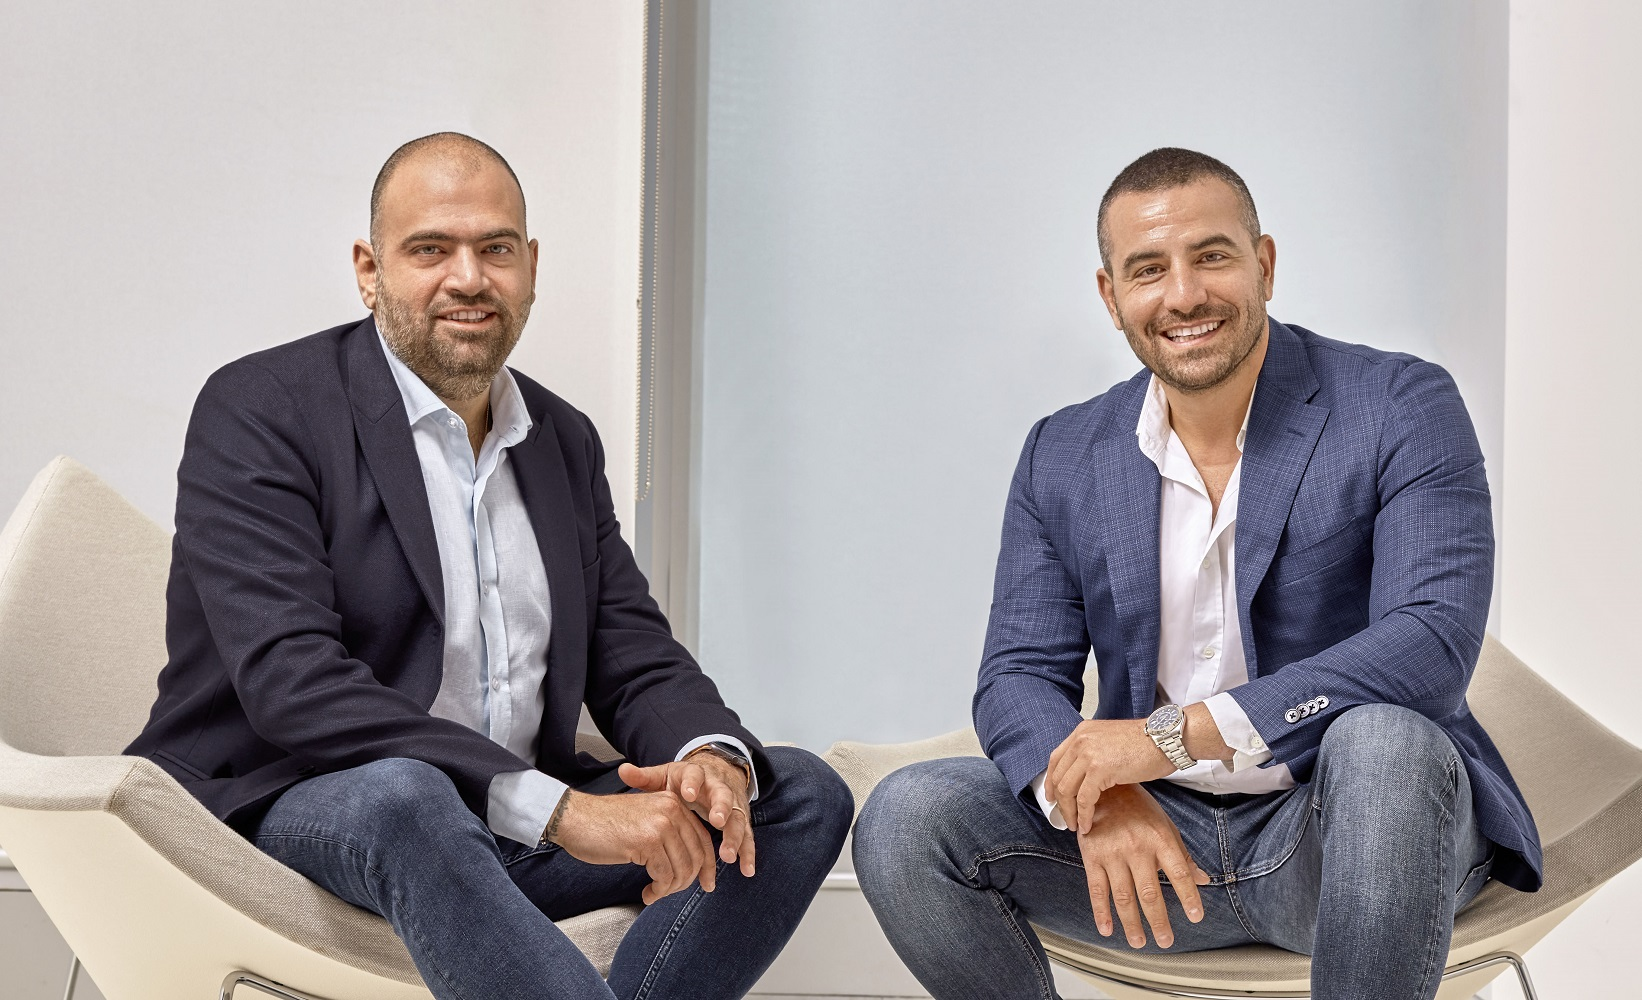 infiniti-middle-east-appoints-publicis-groupe-as-new-customer-experience-partner